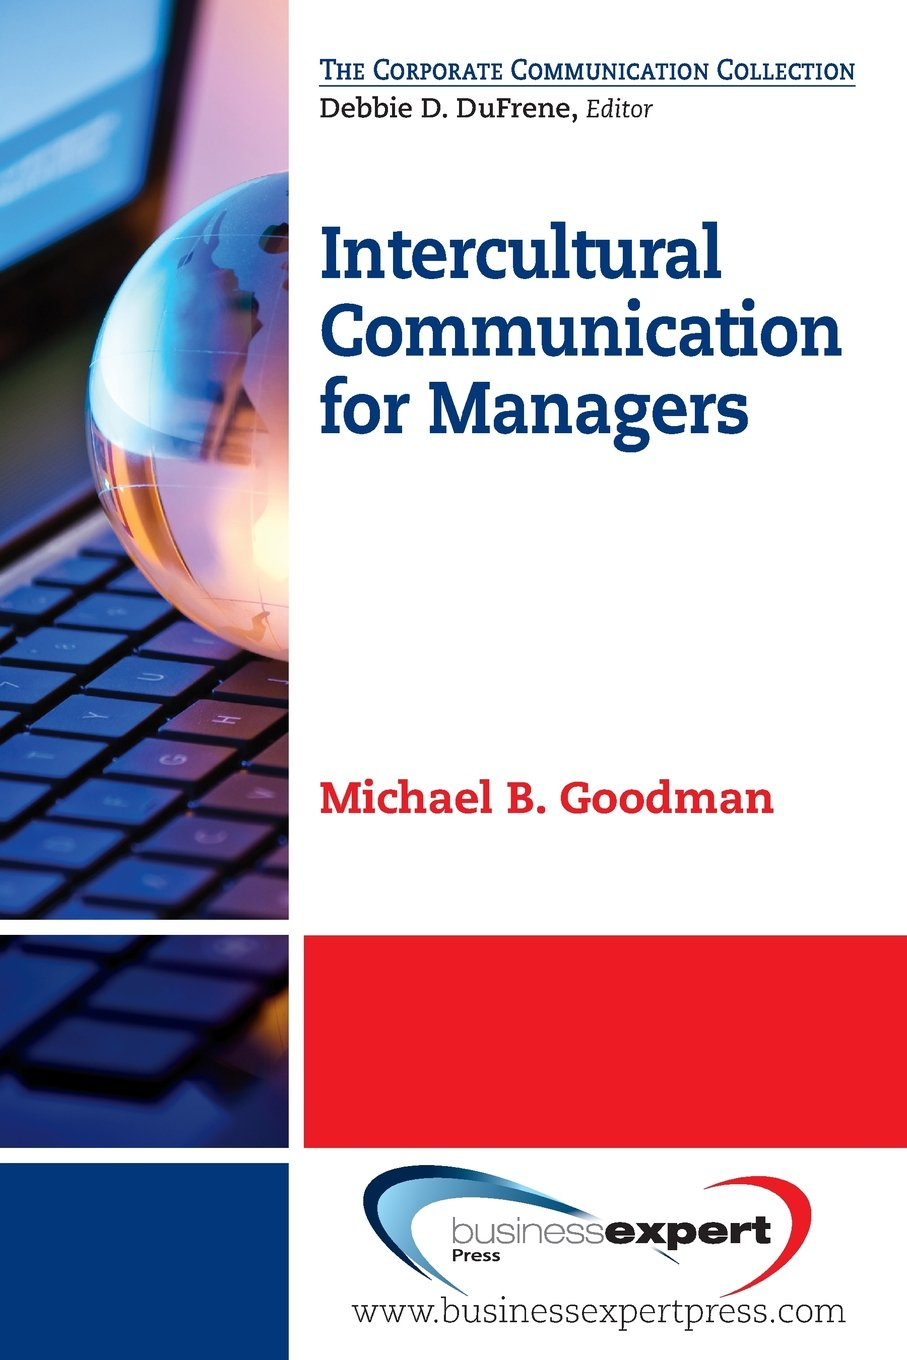 Intercultural Communication for Managers (The Corporate Communicaton Collection) ebook